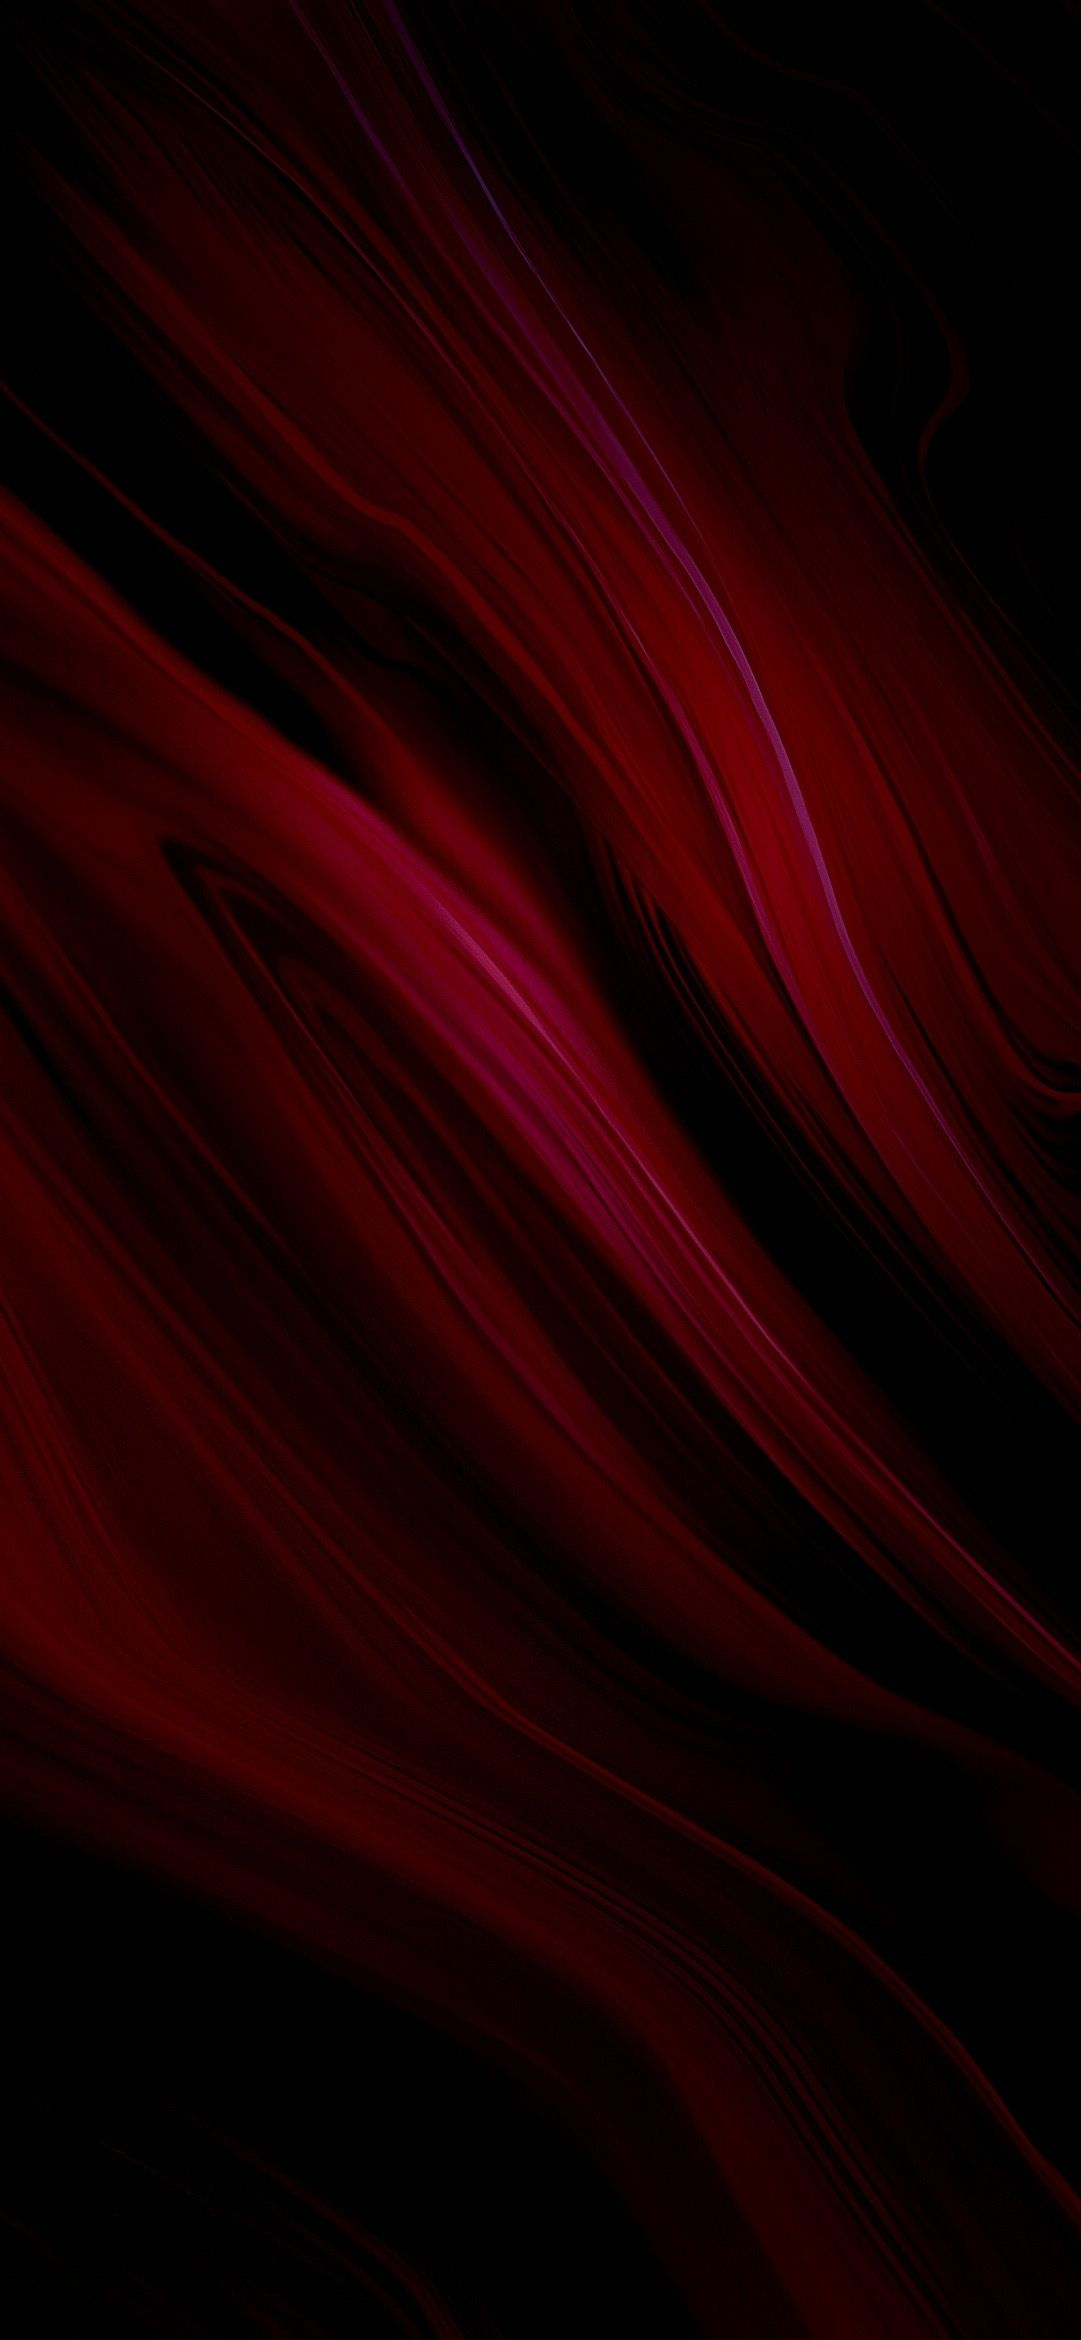 Iphone 11 Pro Wallpaper In 2020 Abstract Iphone Wallpaper Xiaomi Wallpapers Dark Phone Wallpapers